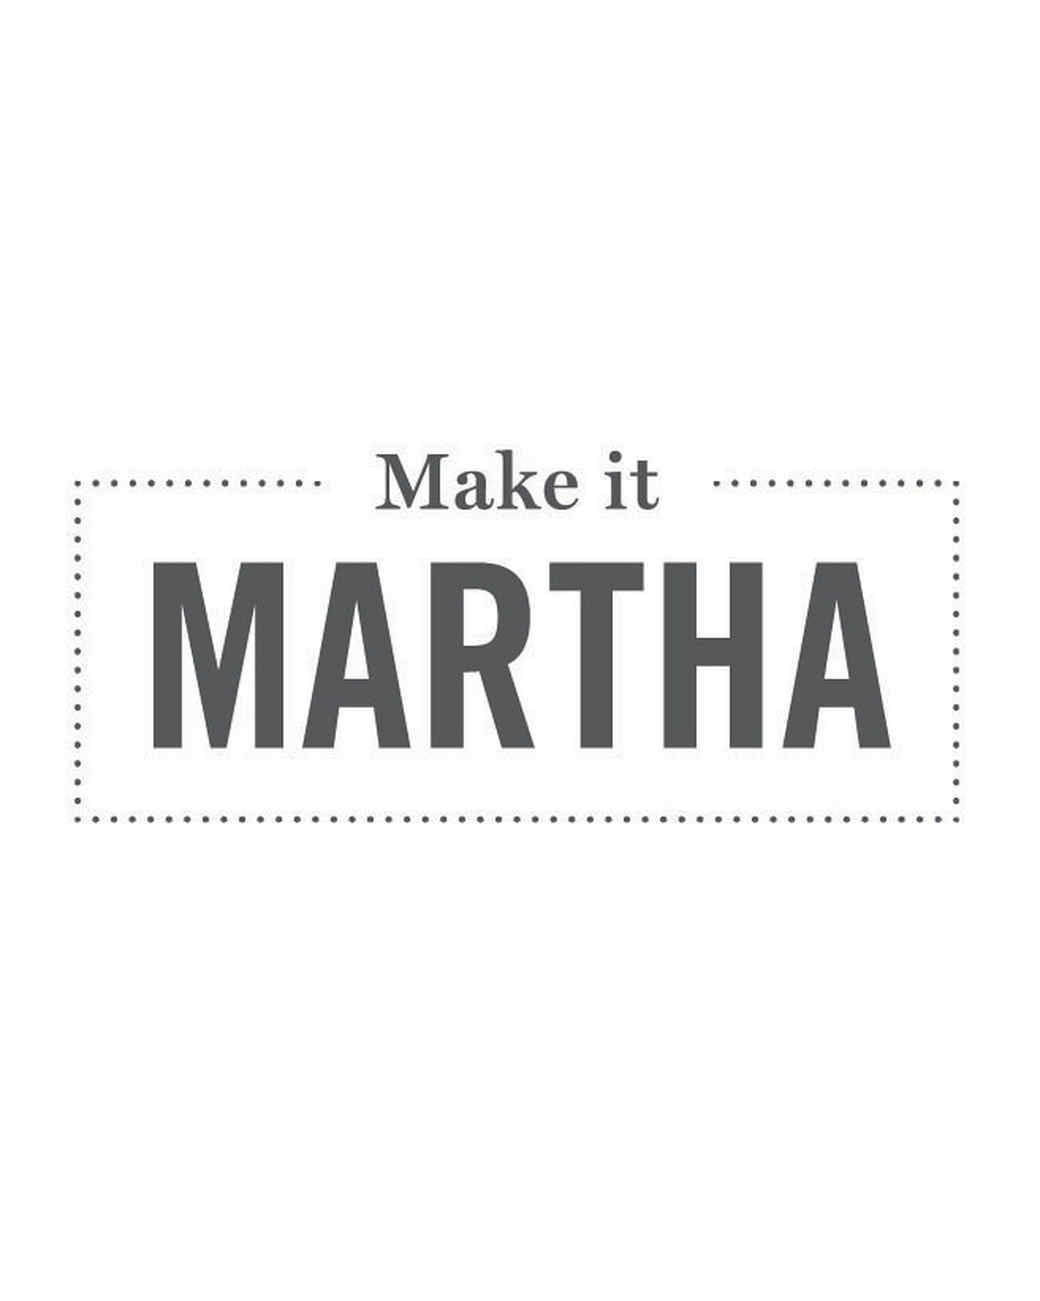 make it martha logo